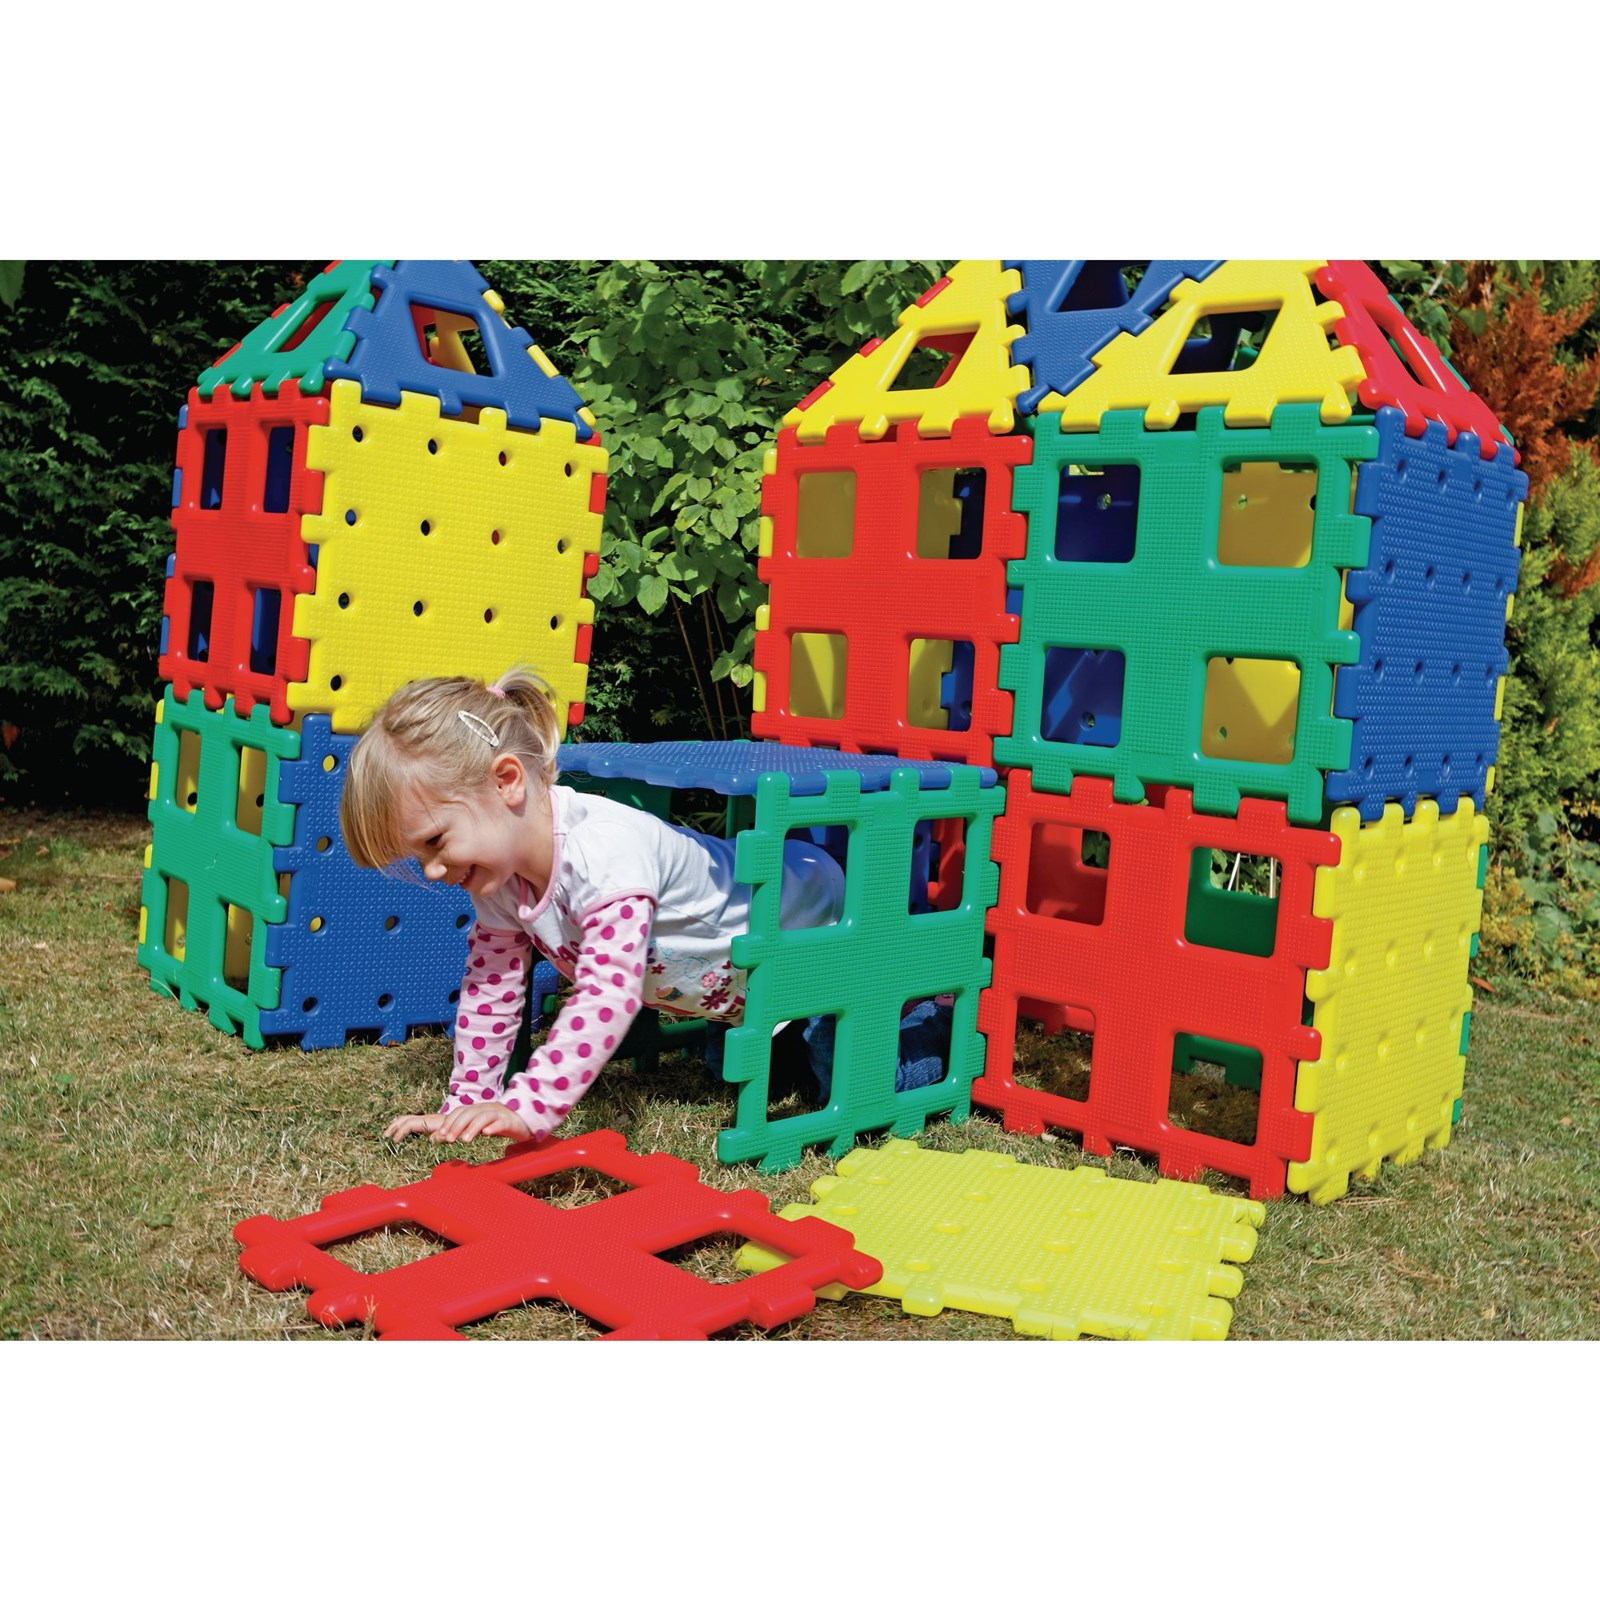 XL Polydron Set 3 - Pack of 36